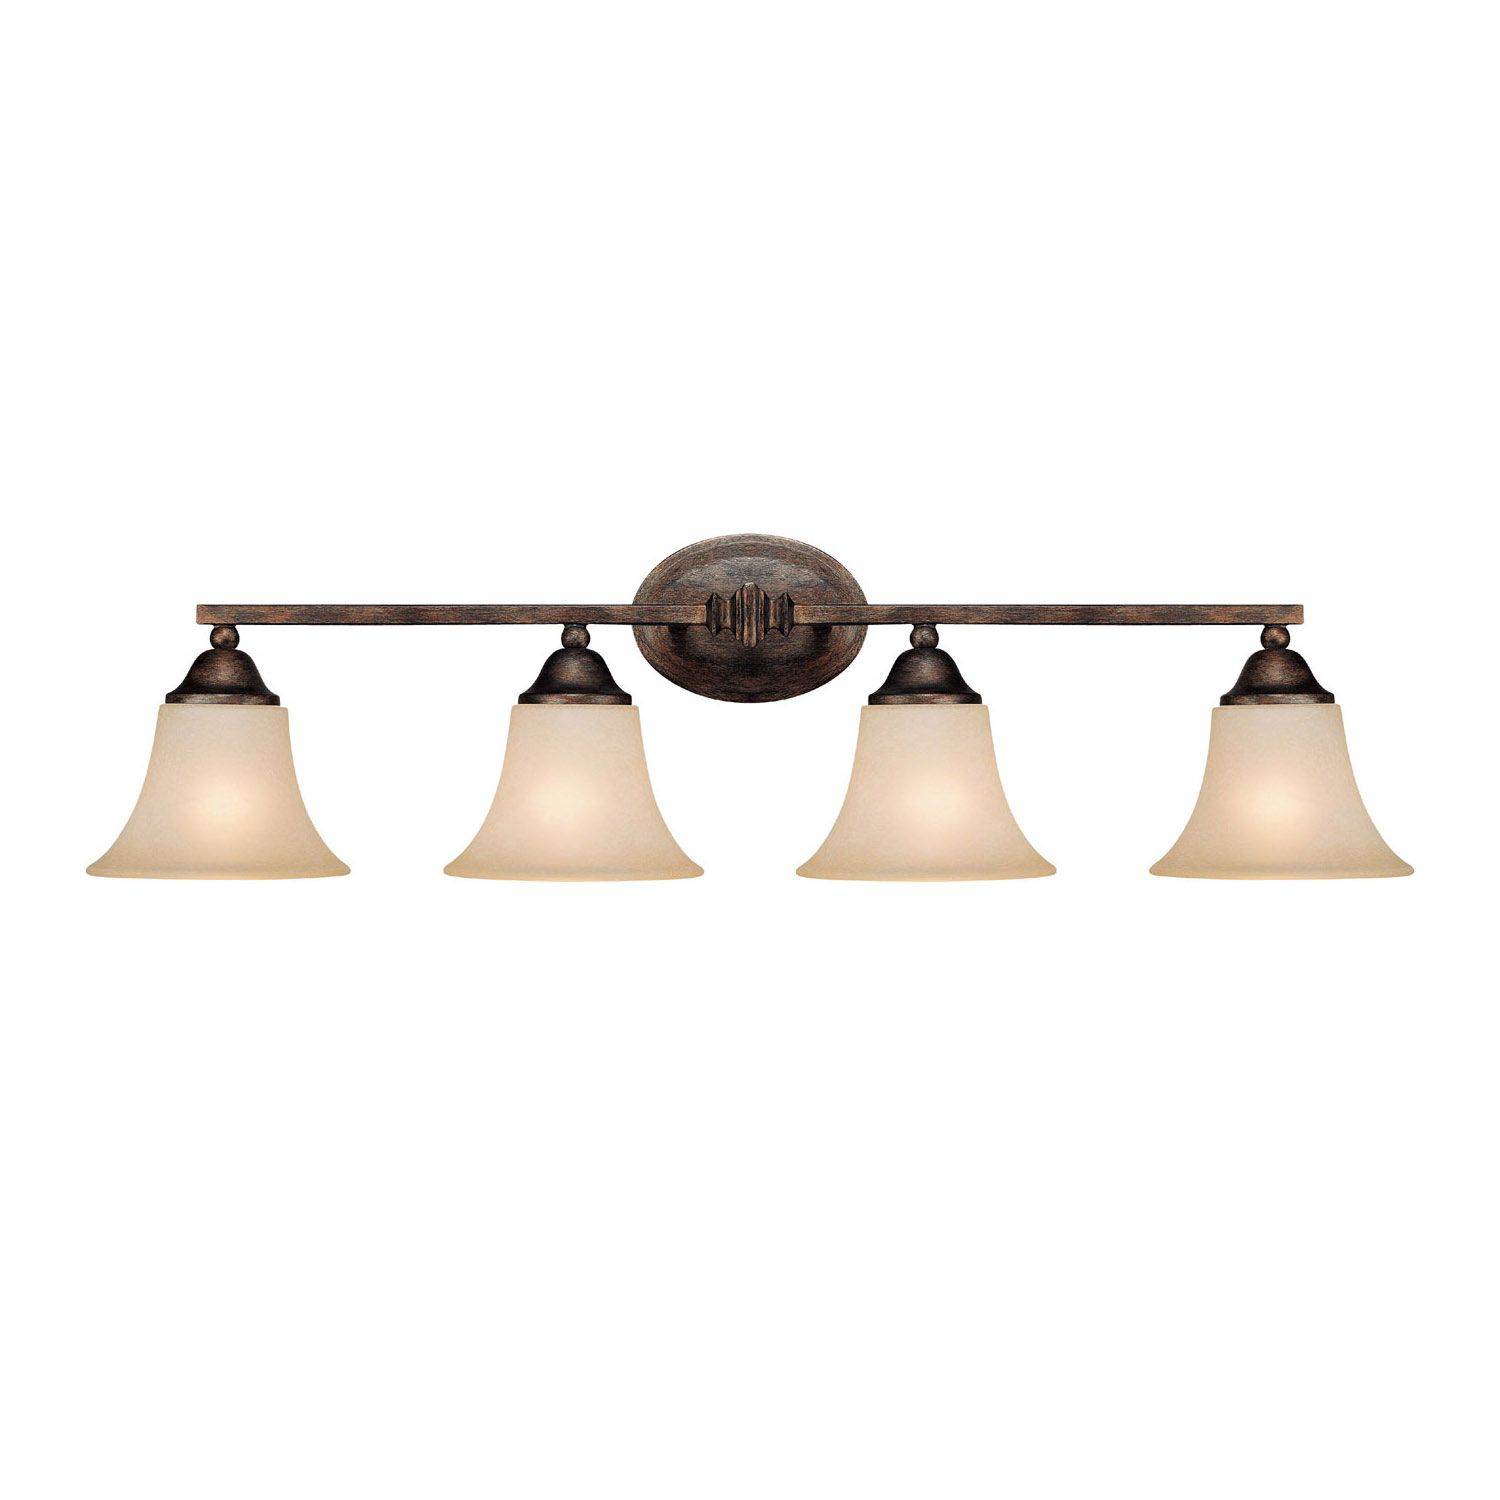 Four Light Vanity Fixture $179 | Bathroom Designs | Pinterest ...